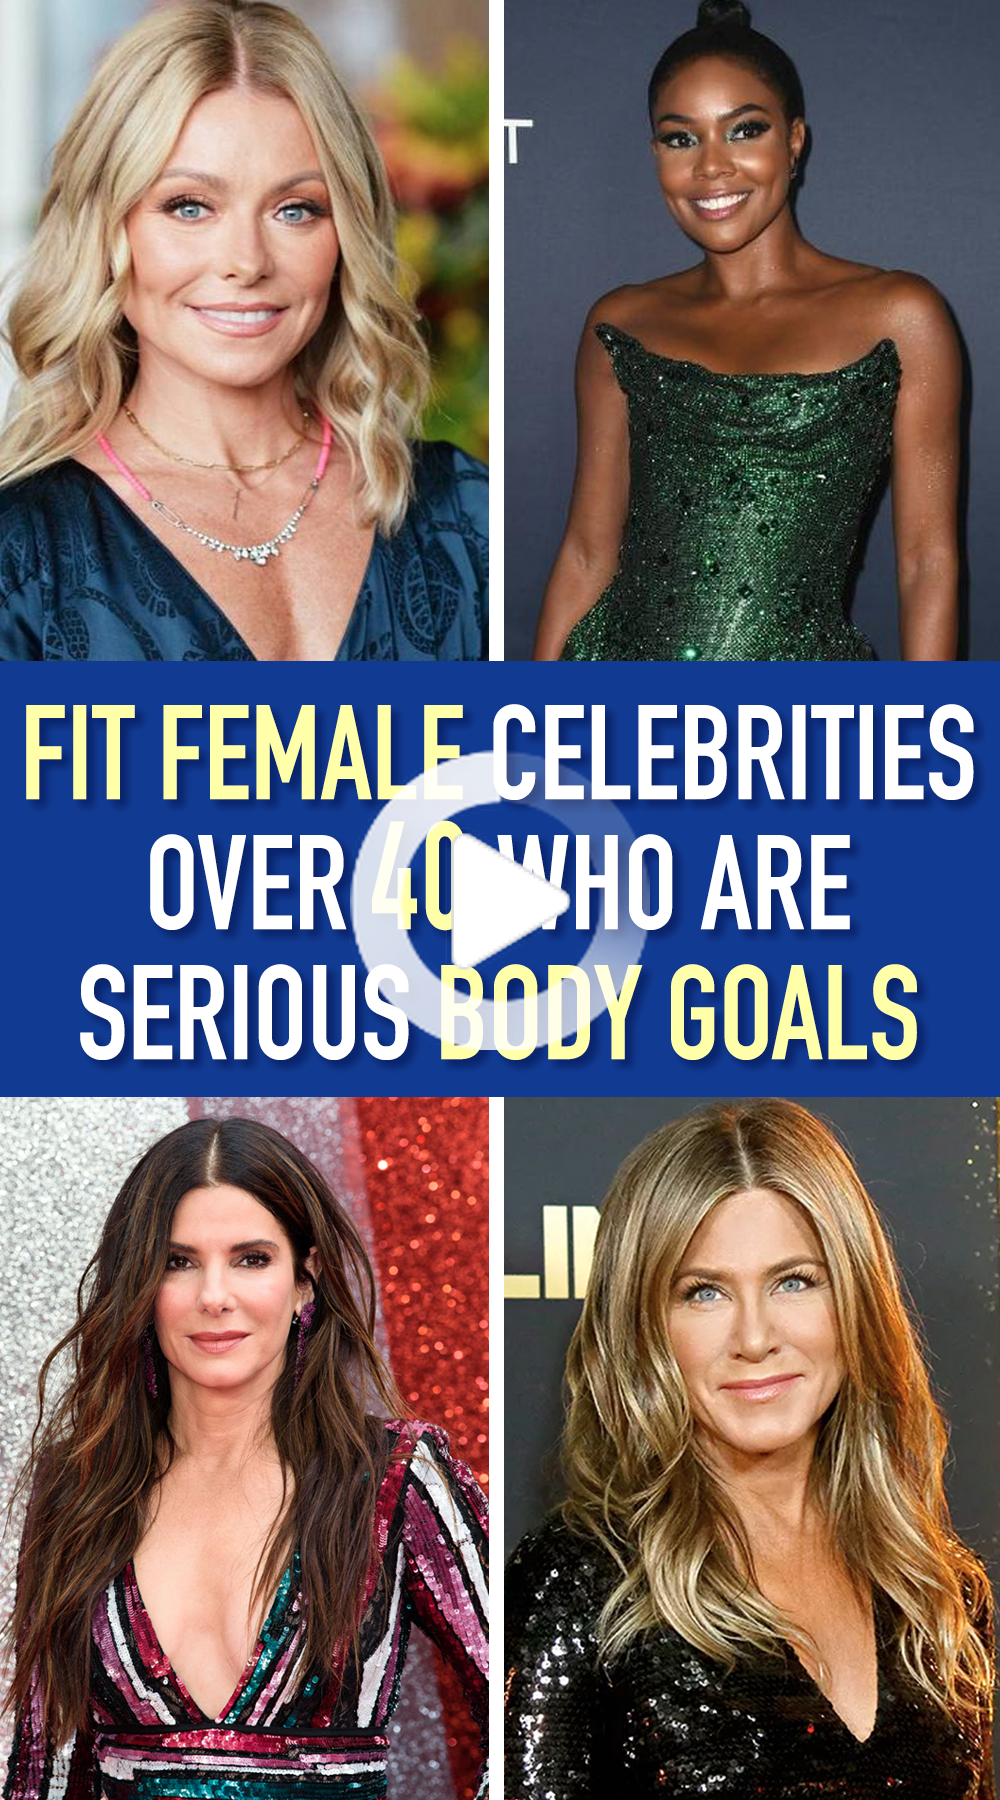 Fit Female Celebrities Over 40 Who Are Serious Body Goals In 2020 Strong Women Fitness Celebrities Female Fitness Check out the women whose bodies inspire us—plus, the tips and tricks that will get you. pinterest